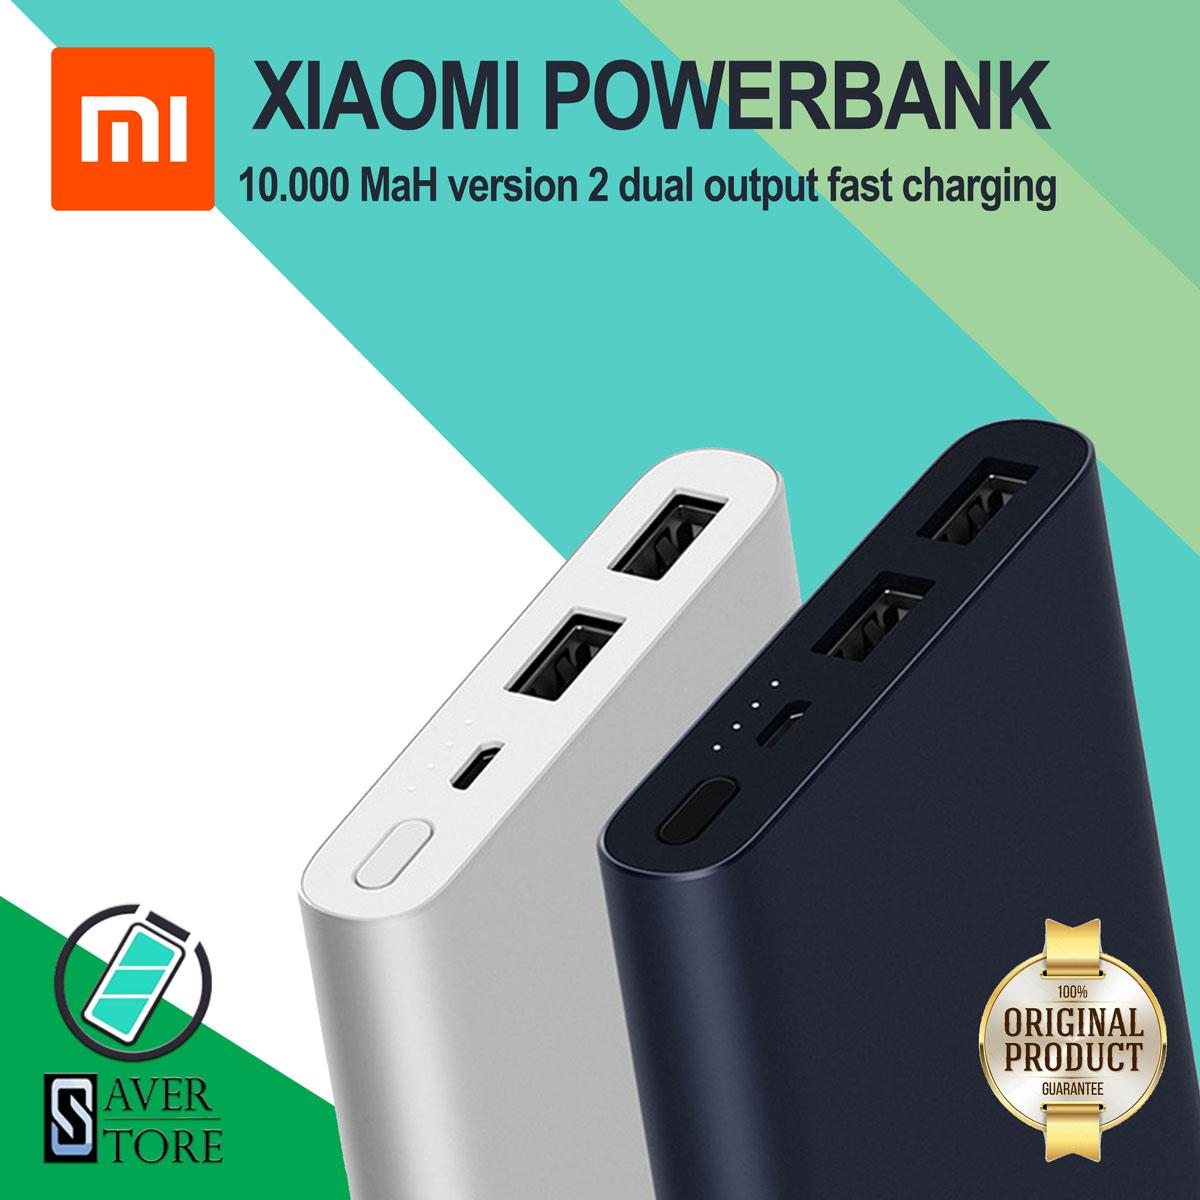 ORIGINAL Xiaomi power bank 10000 mah MI powerbank 2s dual usb output